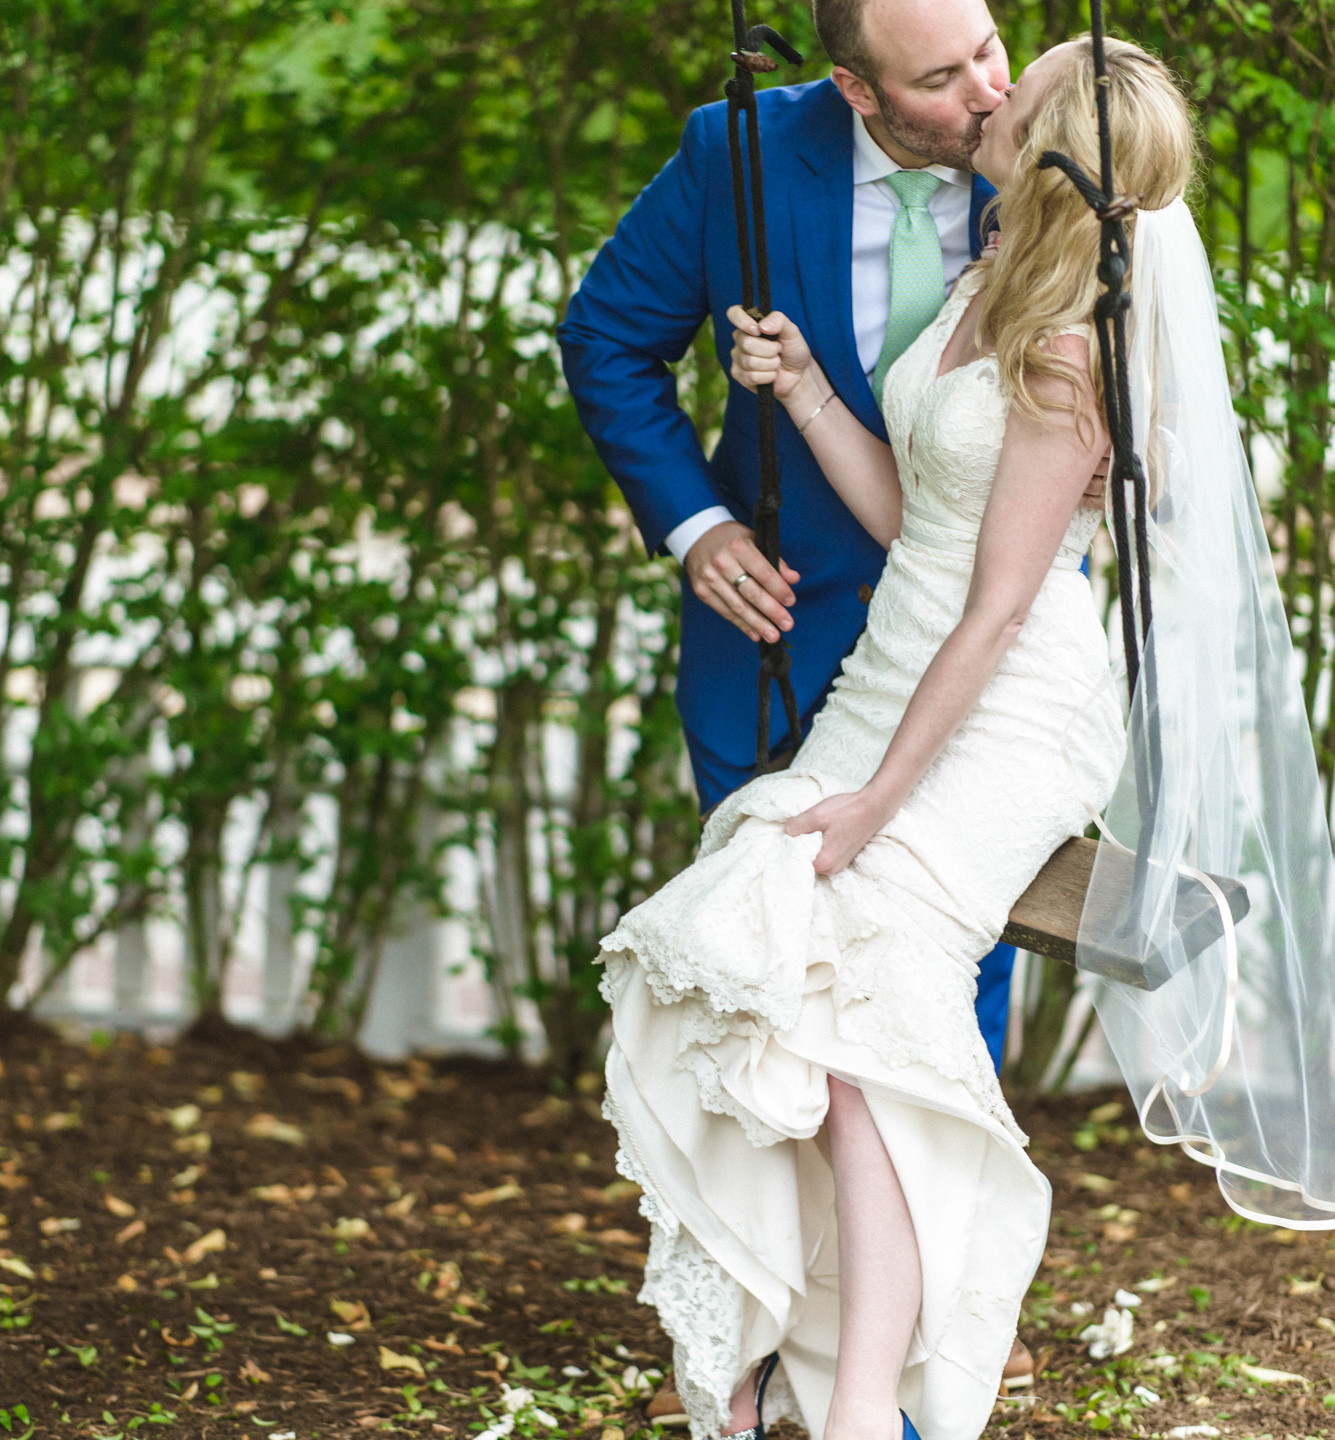 Romance at the swing  at Atria Restaurant and Brick Cellar Bar in Edgartown photo by David Welch Photography